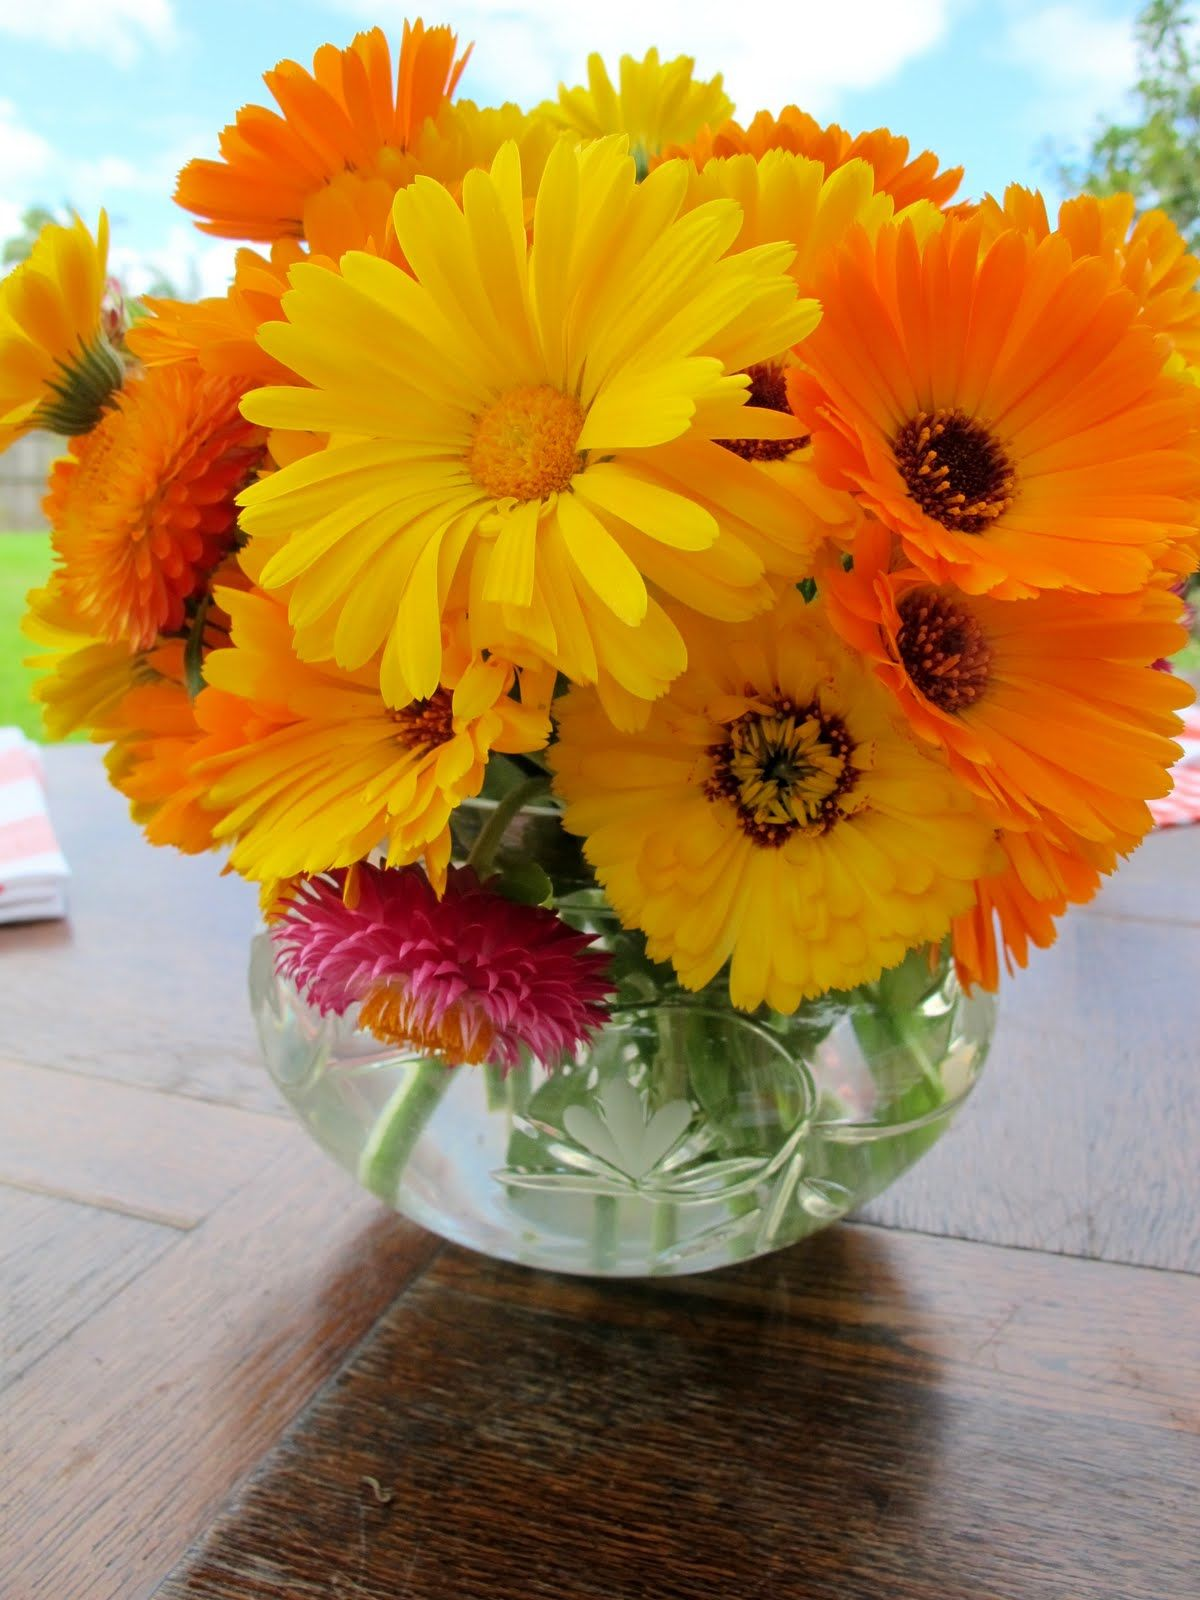 Cute For A Center Piece Crafty Pinterest Marigold Flowers And